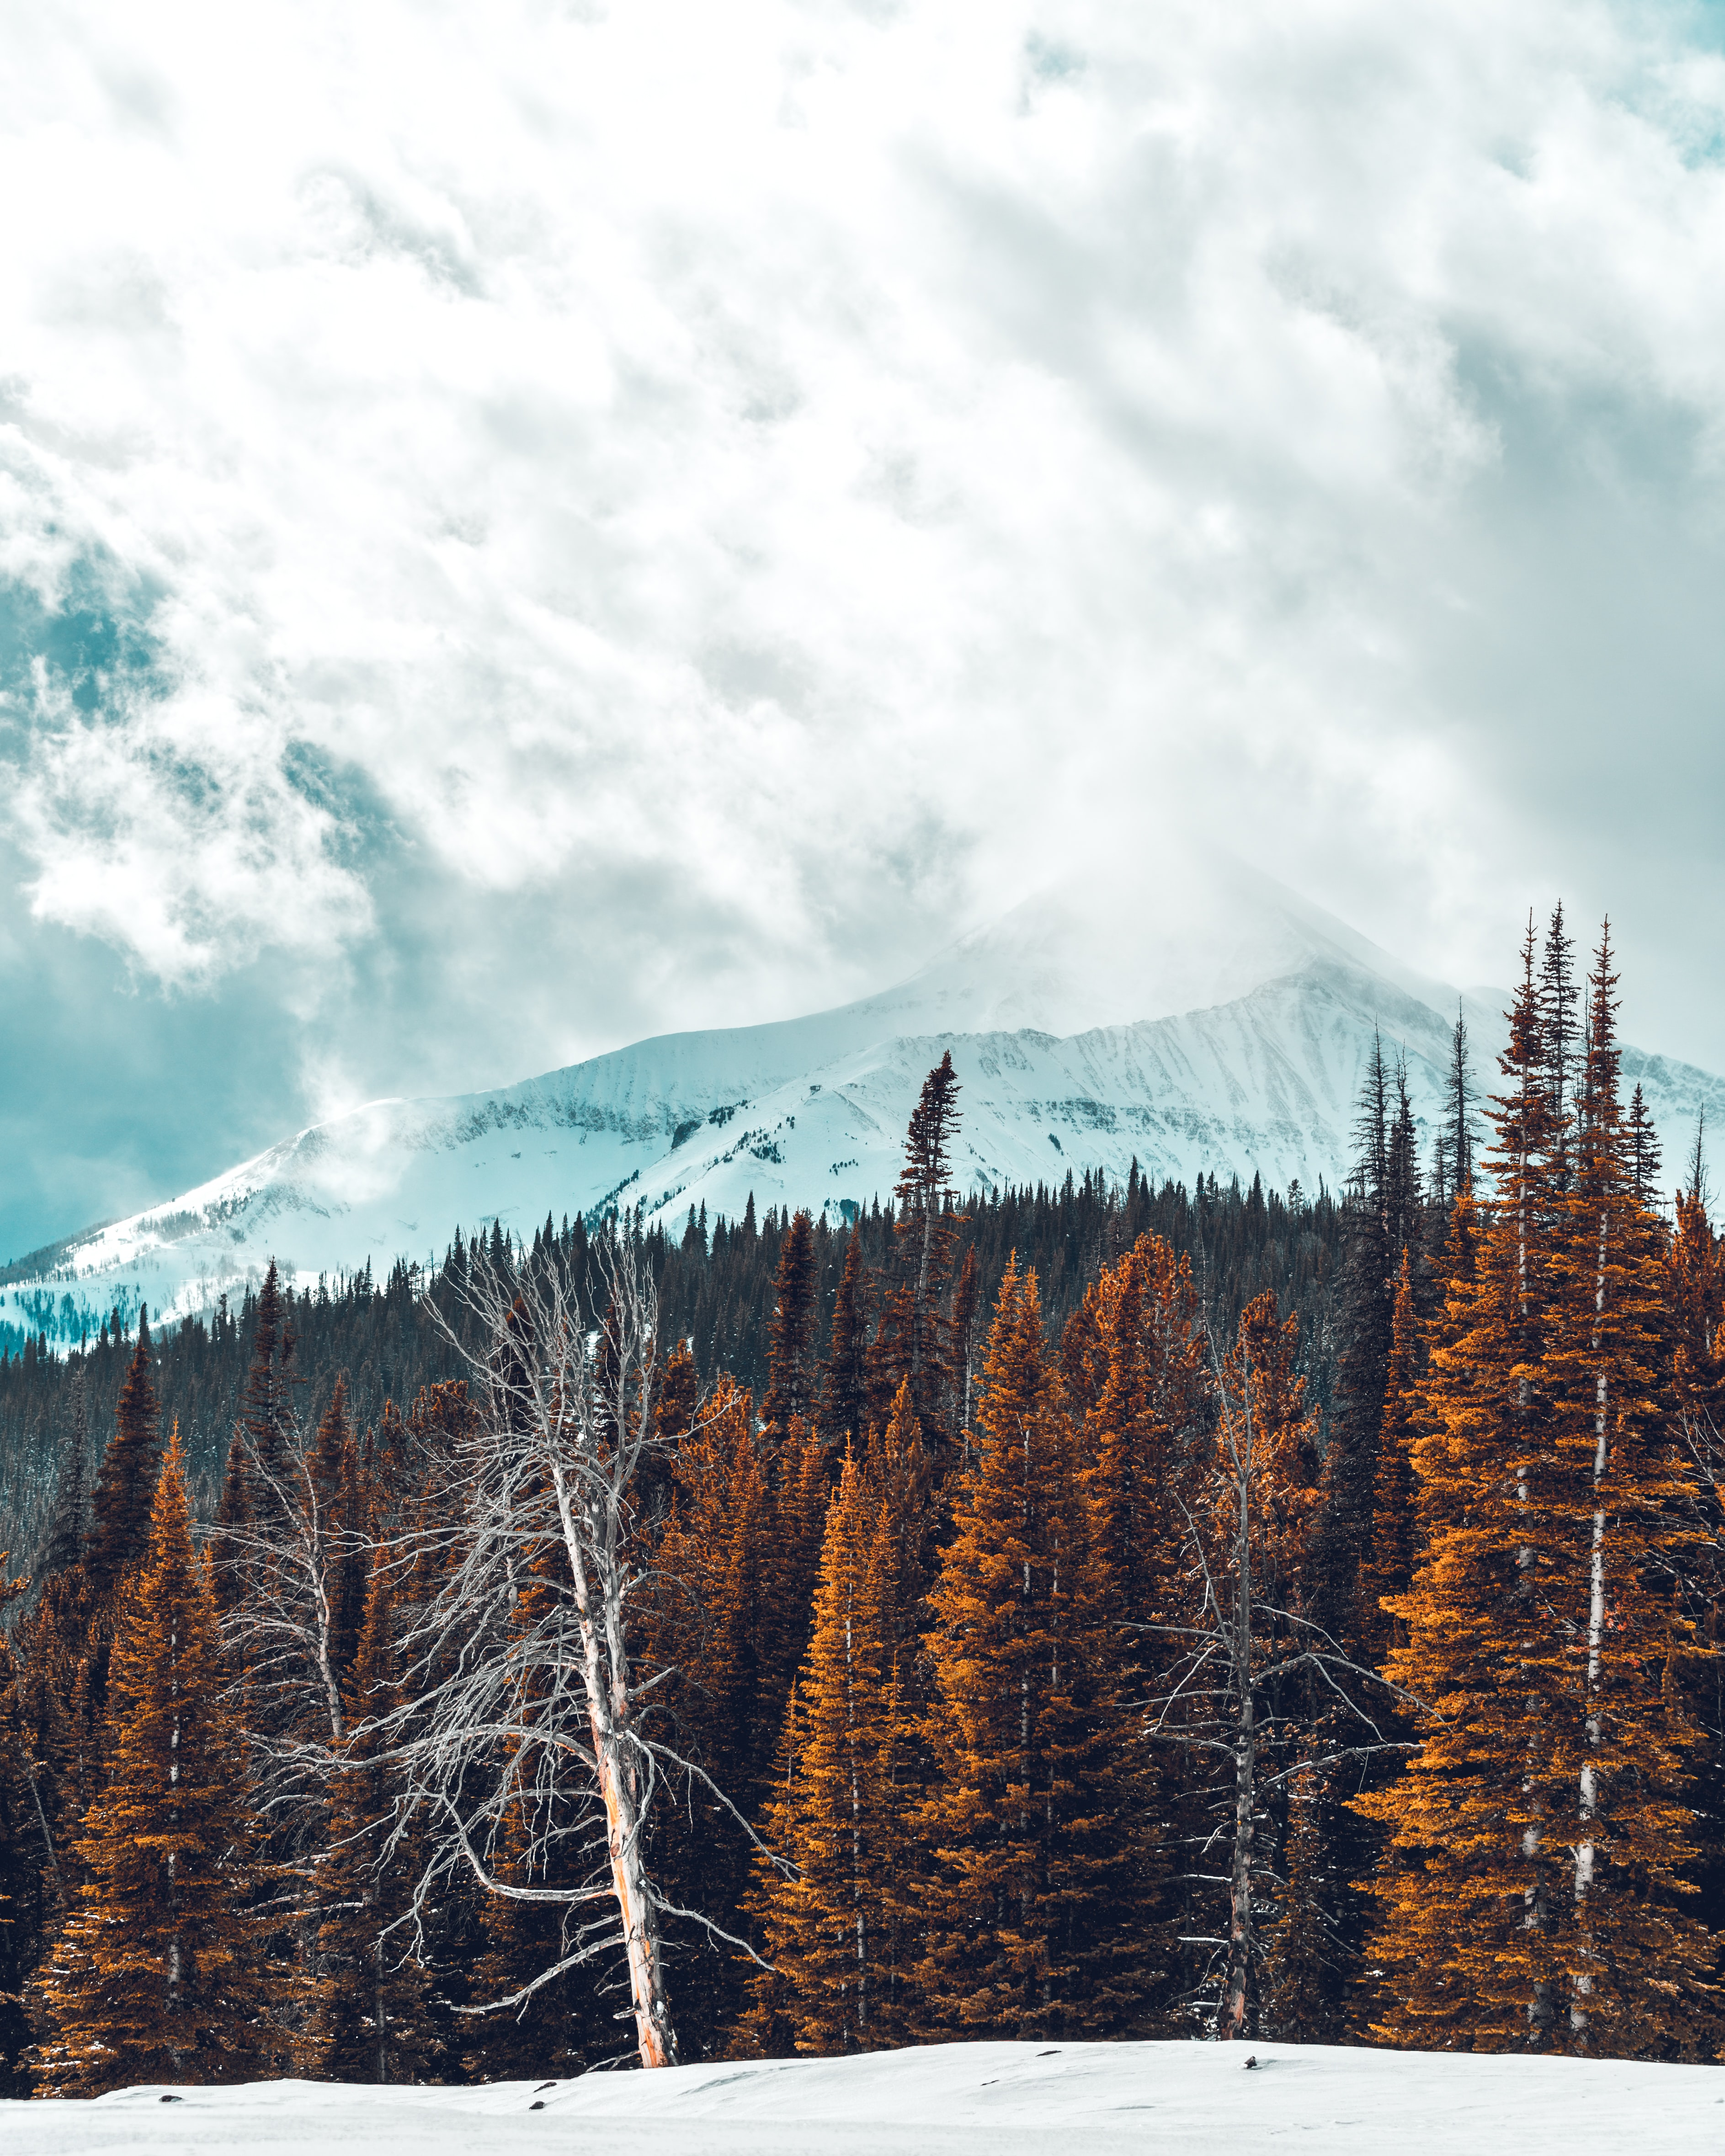 pine trees in front of snow-capped mountain